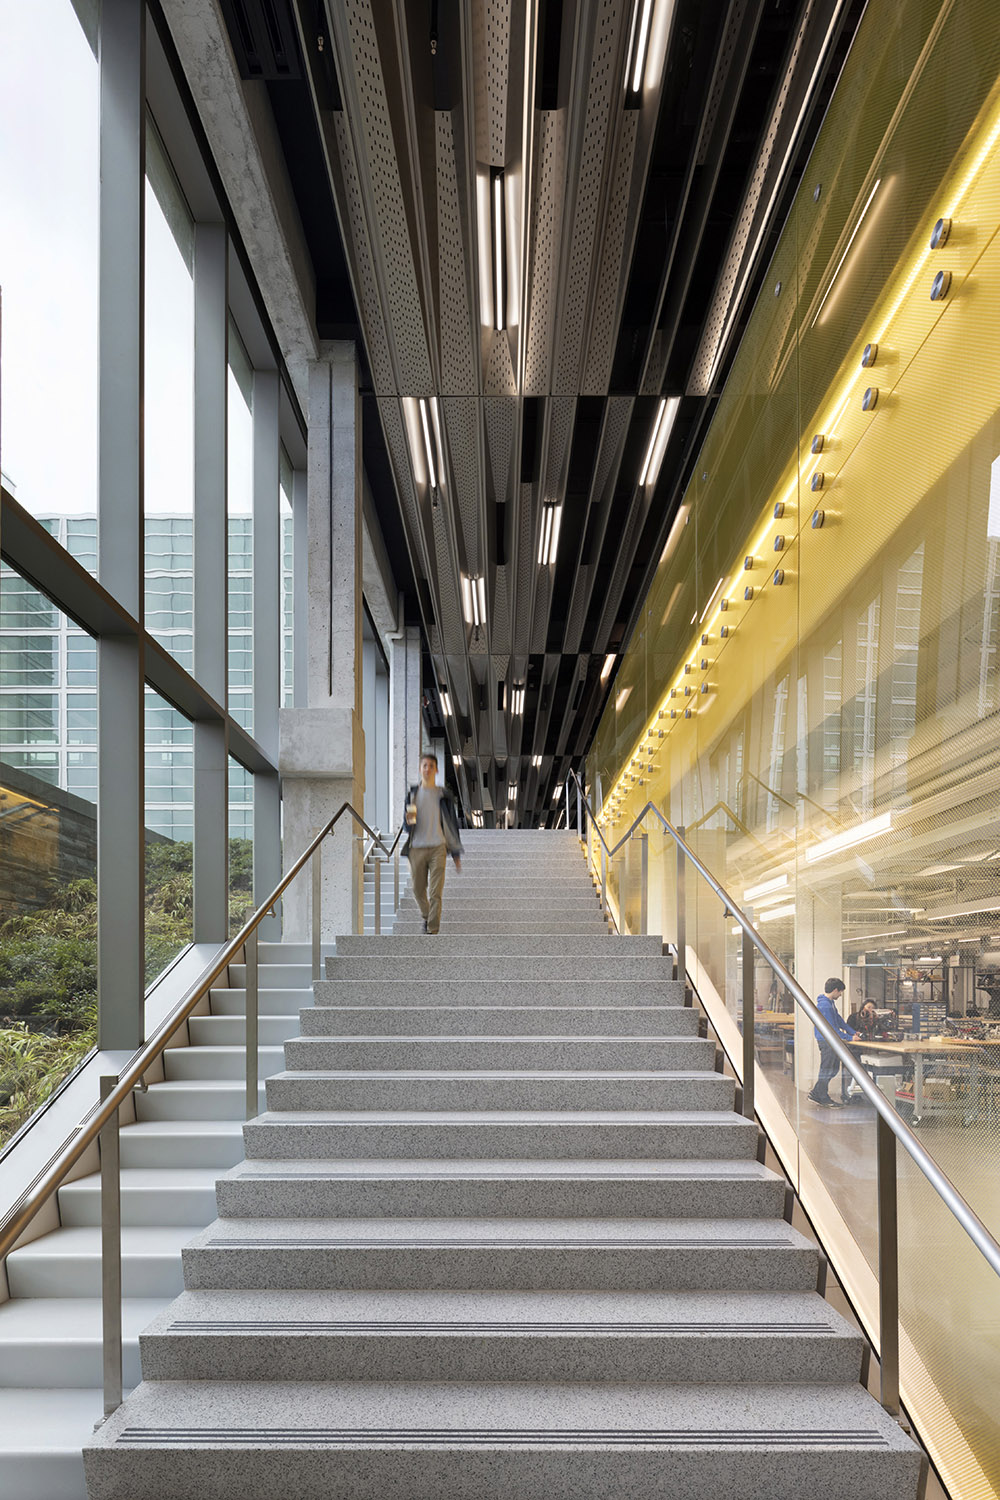 Cornell University Upson Hall: New Double-Height Main Staircase Michael Moran